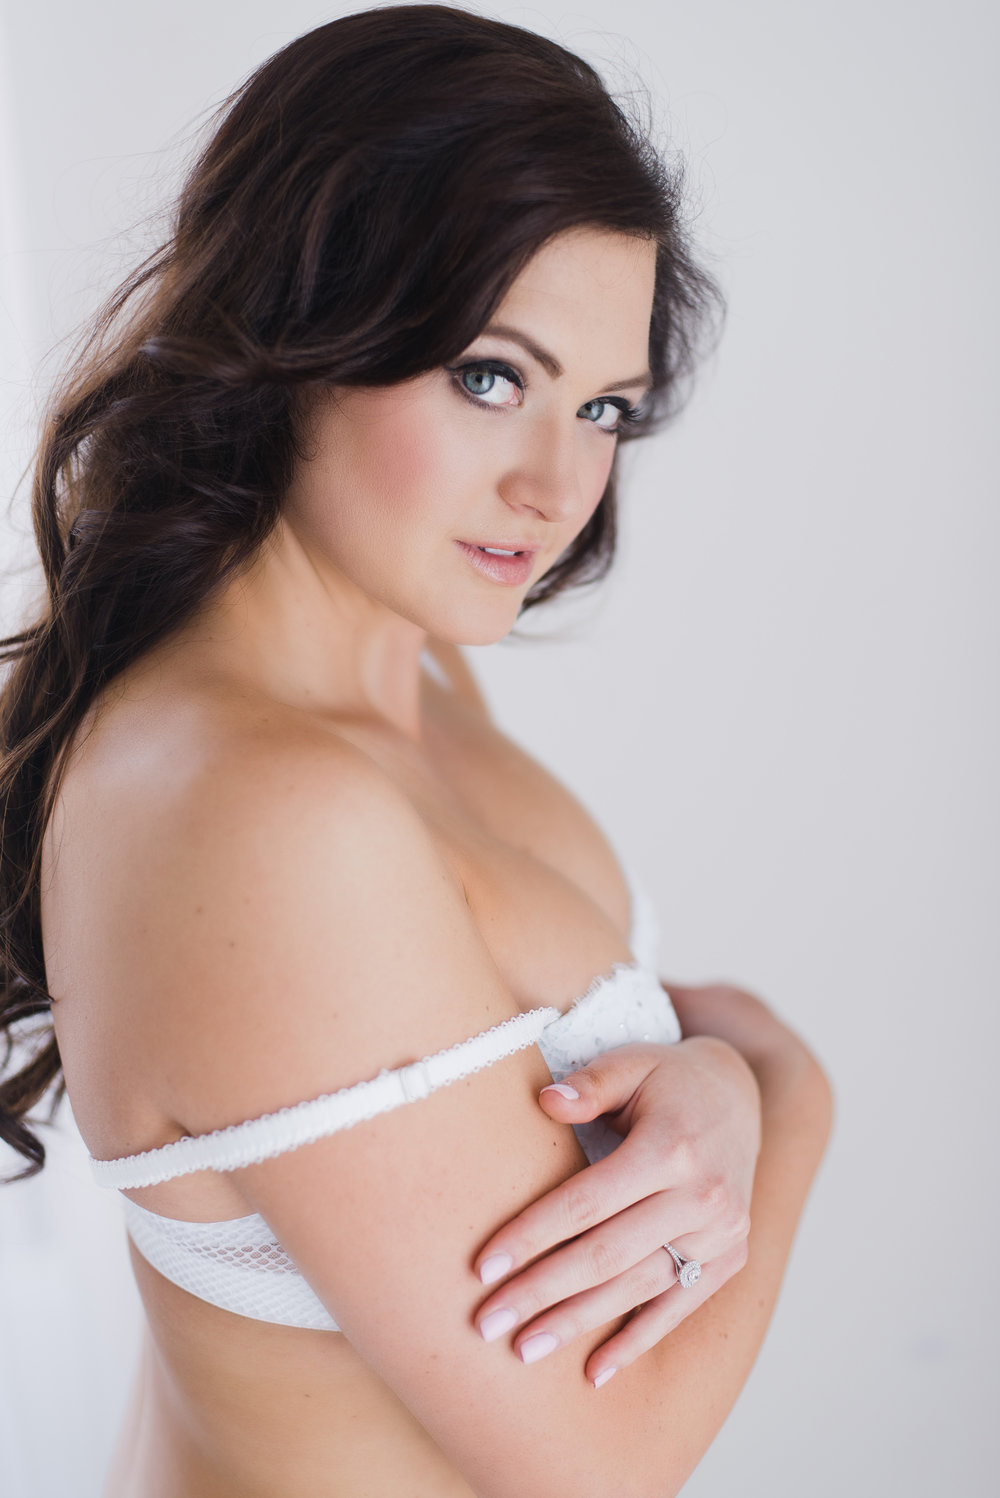 005Amy Cloud Photography Utah Boudoir Photographer .jpg